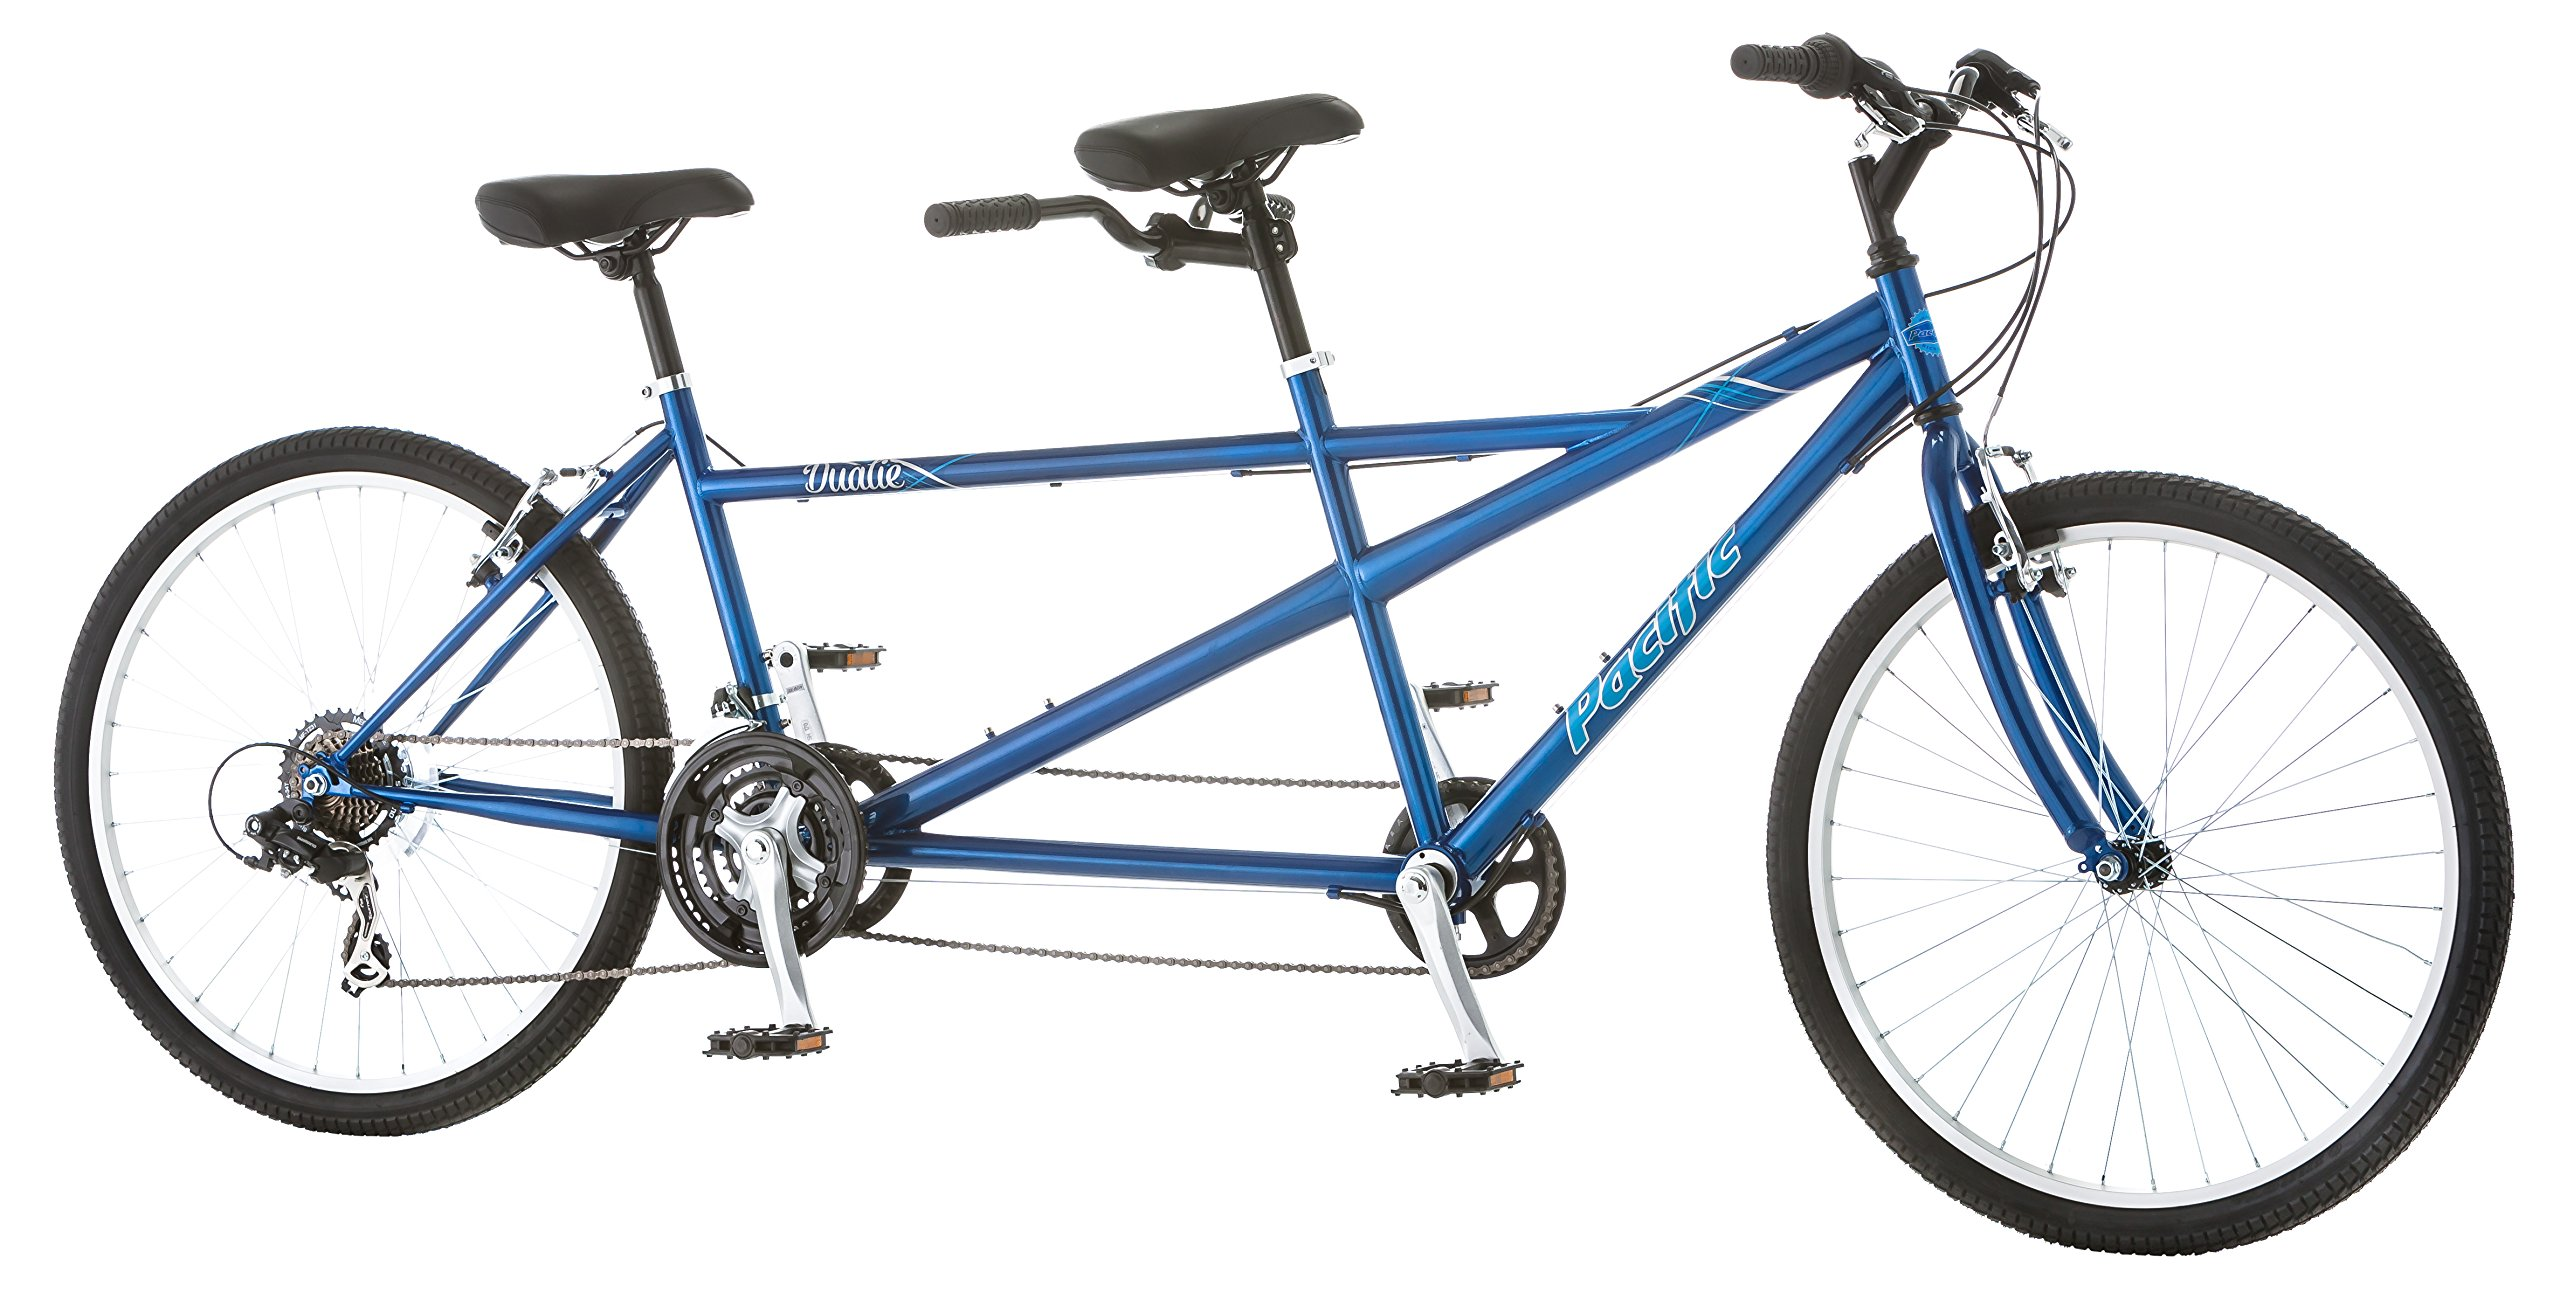 Pacific Dualie Tandem Bicycle w/ 26inch Wheels,Blue, One Size by Pacific